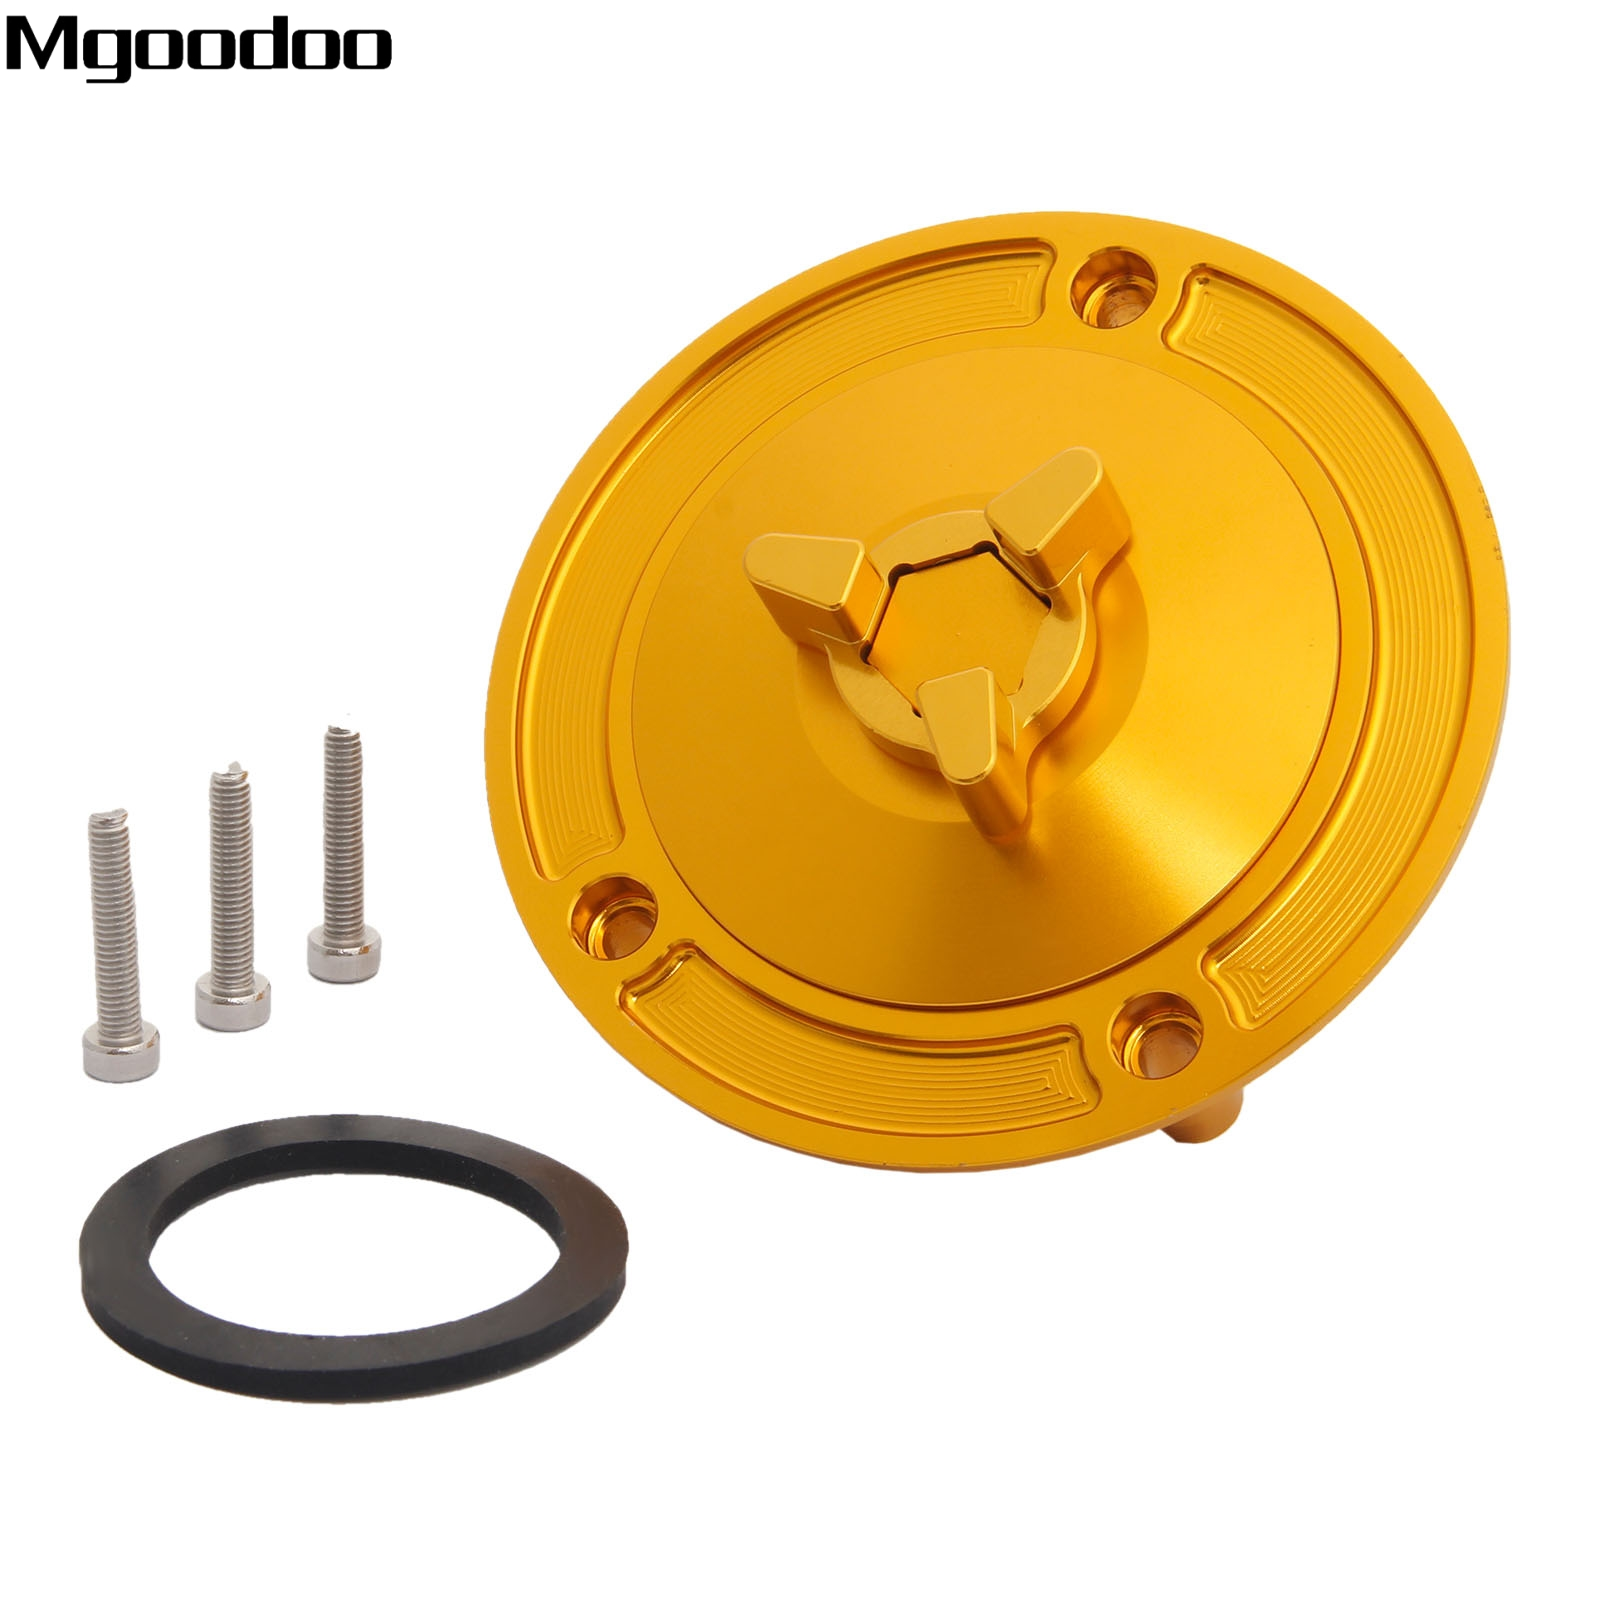 Mgoodoo New CNC Aluminum Fuel Tank Gas Cap Cover For Suzuki GSXR 600 750 1000 GSXR 1300 Hayabusa SV650/SV650S SV1000/SV1000S high quality motorcycle parts aluminum alloy gas fuel petrol tank cap cover fuel cap for honda cbr 929 954 rc51 all years